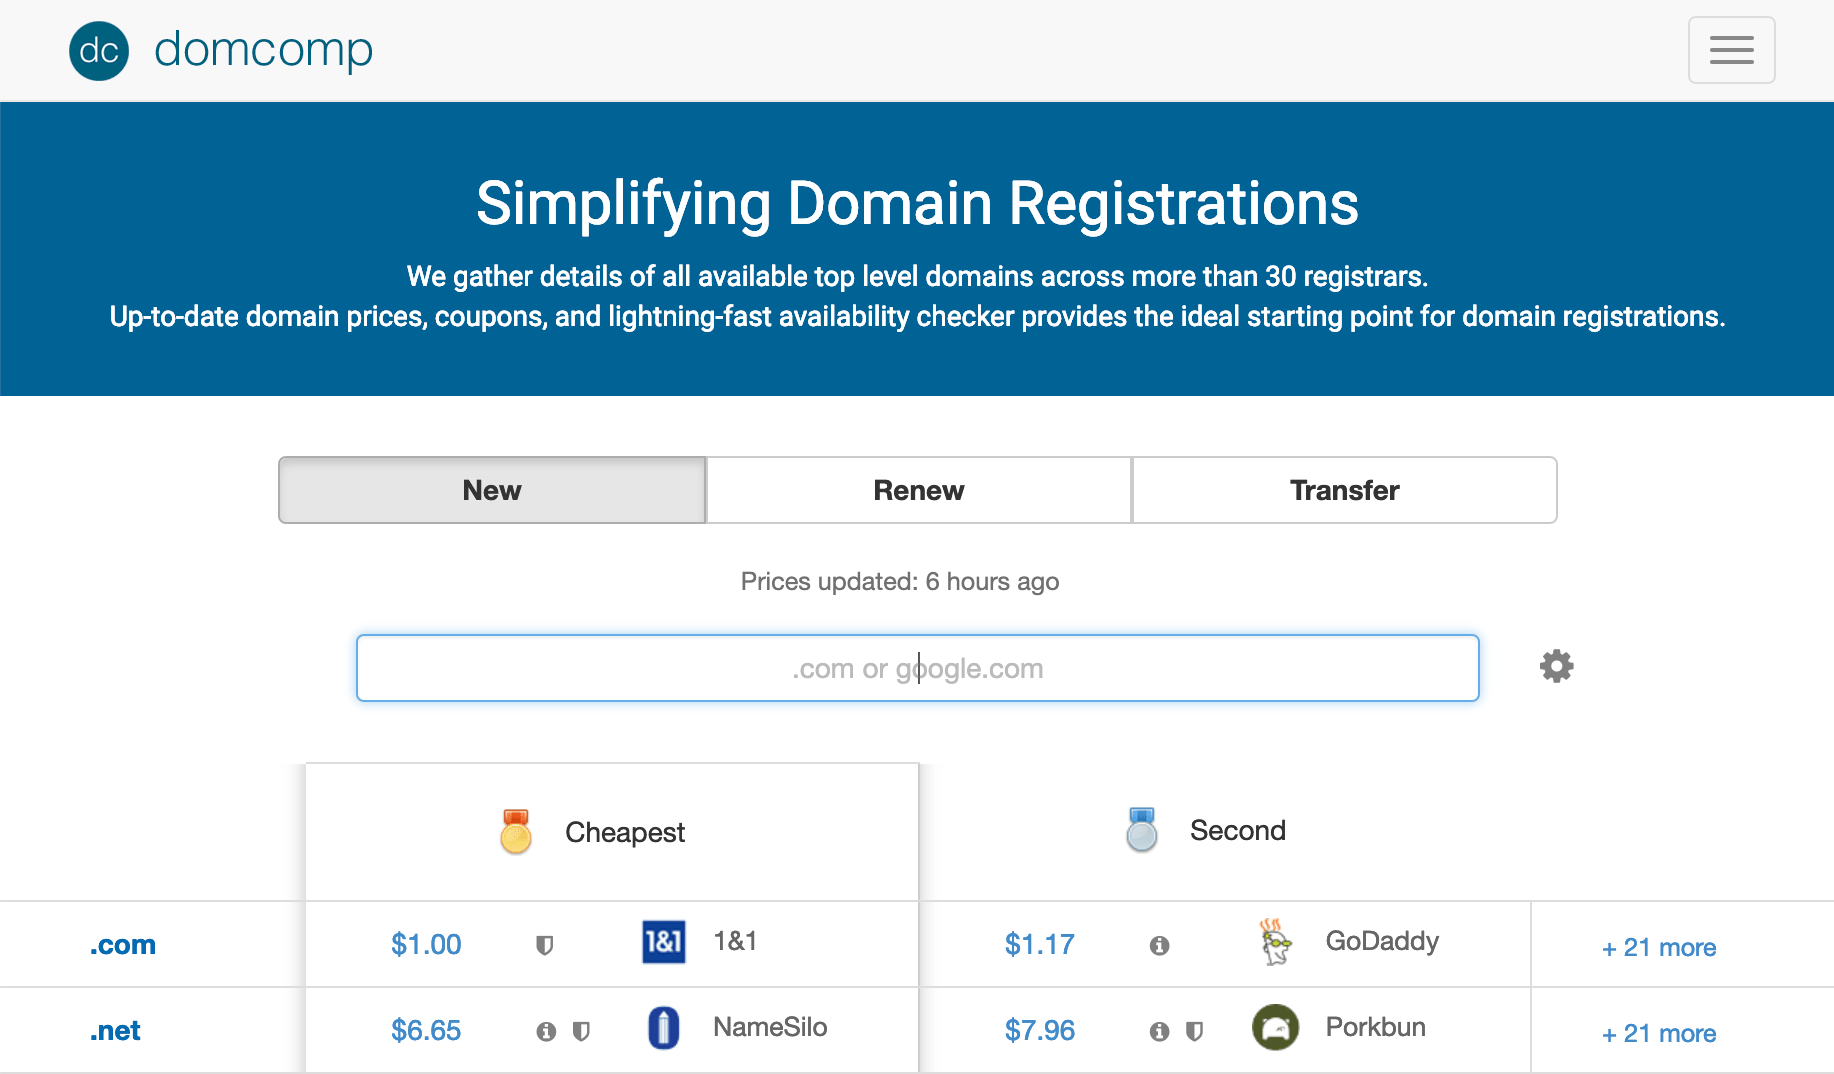 DomComp.com for Comparing Domain Name Registration and Renewal Prices